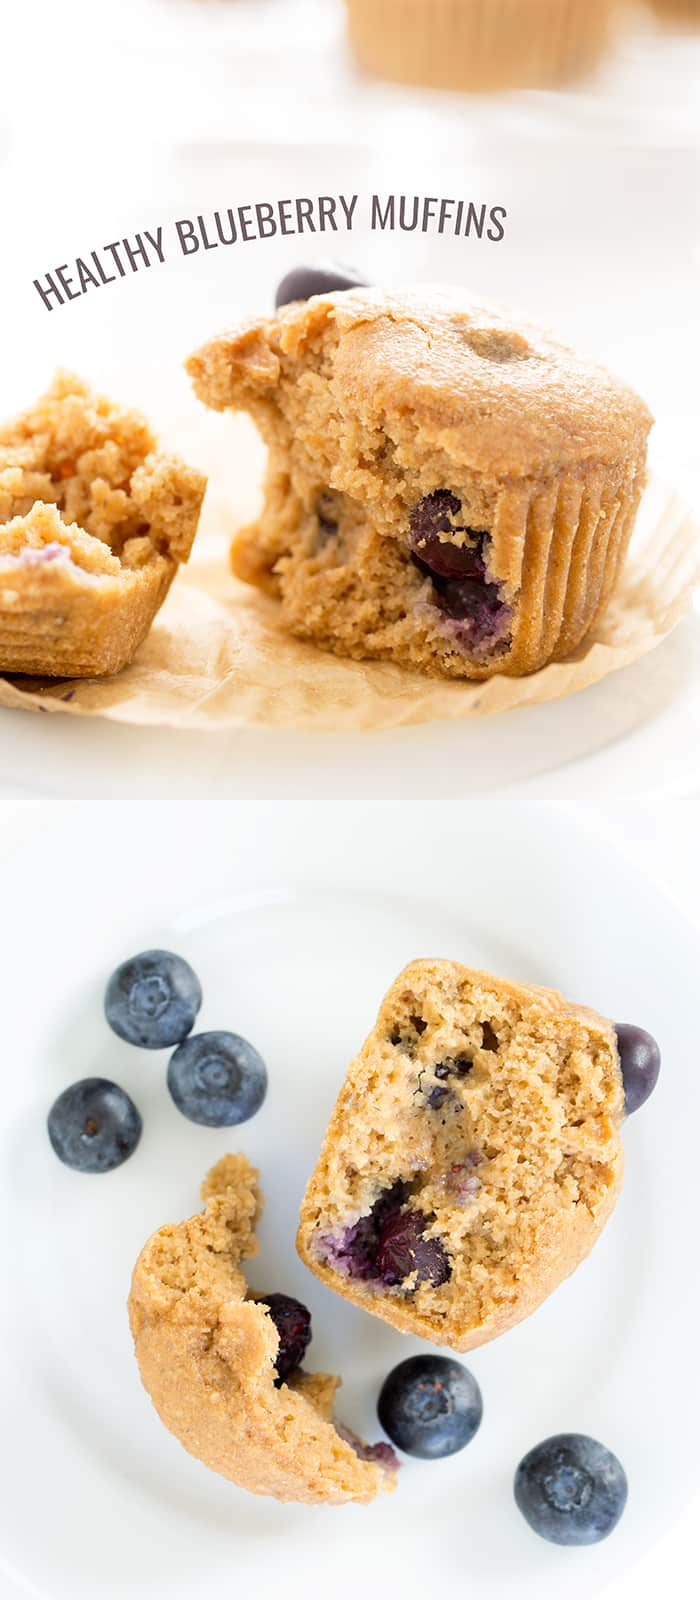 Closeup image of broken blueberry muffin and overhead image of broken blueberry muffin with more blueberries